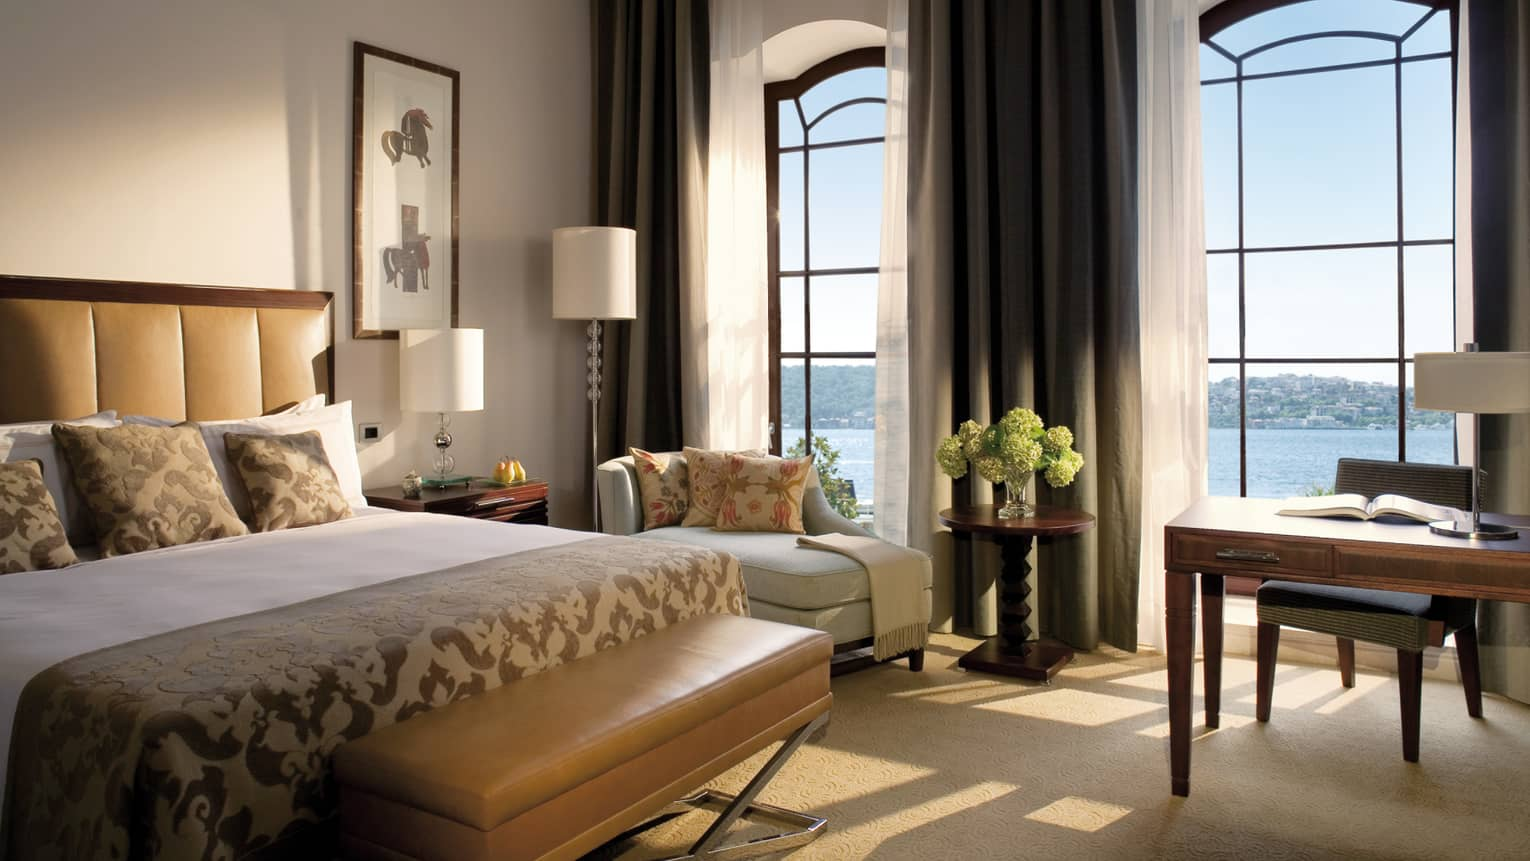 Where To Stay In Istanbul: TSG's 11 Best Hotels In Istanbul / Four Seasons Hotel Istanbul At The Bosphorus